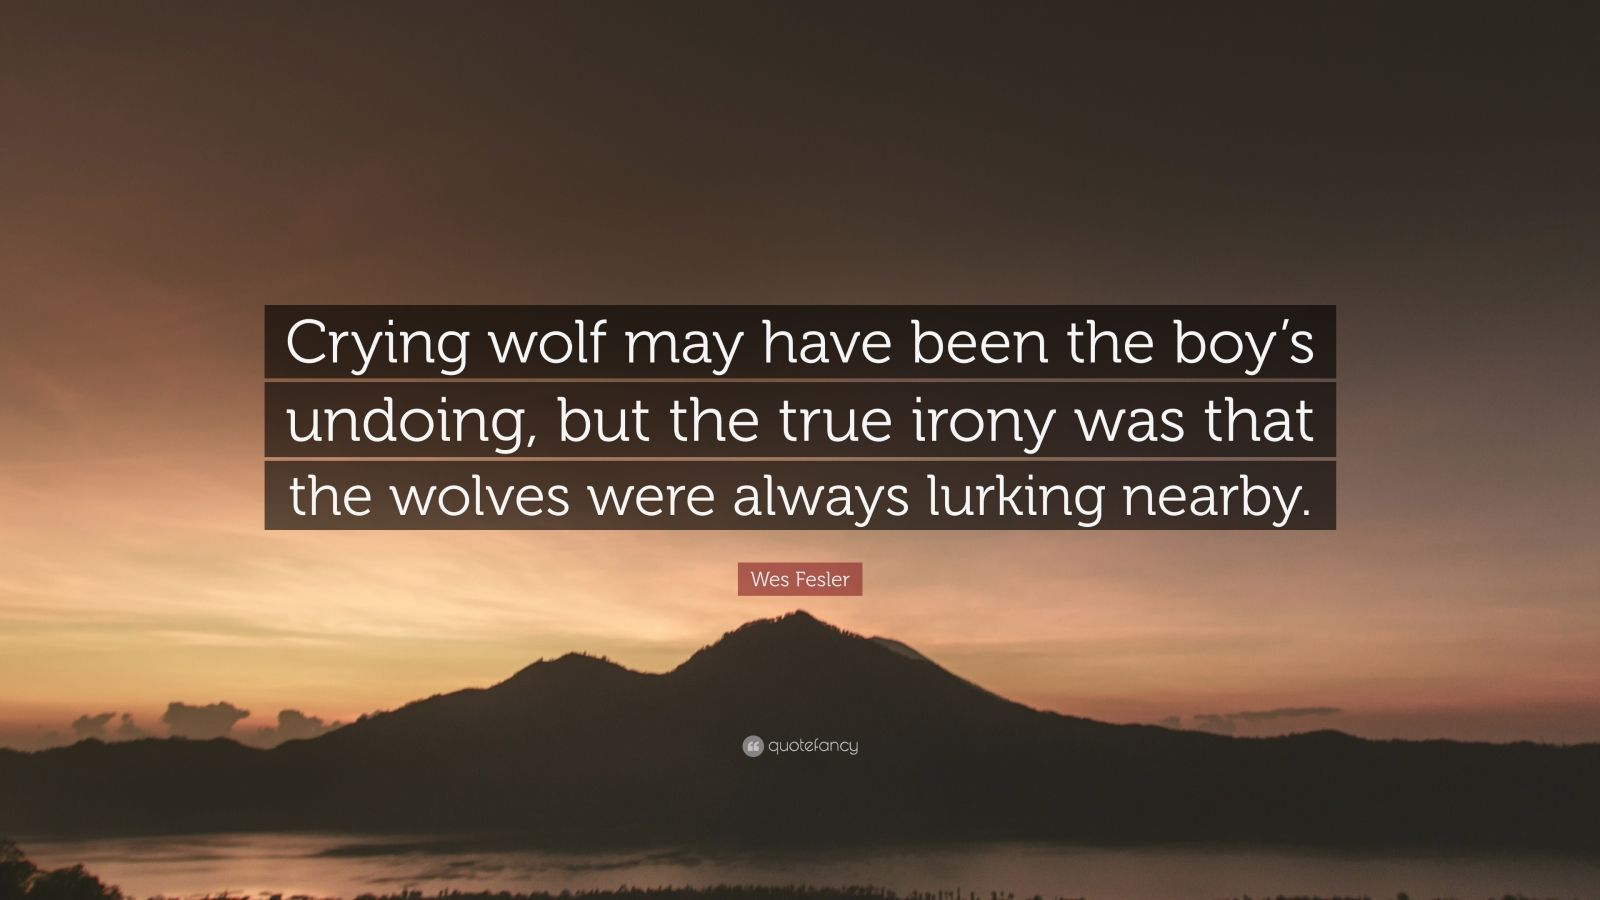 """Wes Fesler Quote: """"Crying wolf may have been the boy's undoing, but the true irony was that the wolves were always lurking nearby."""""""